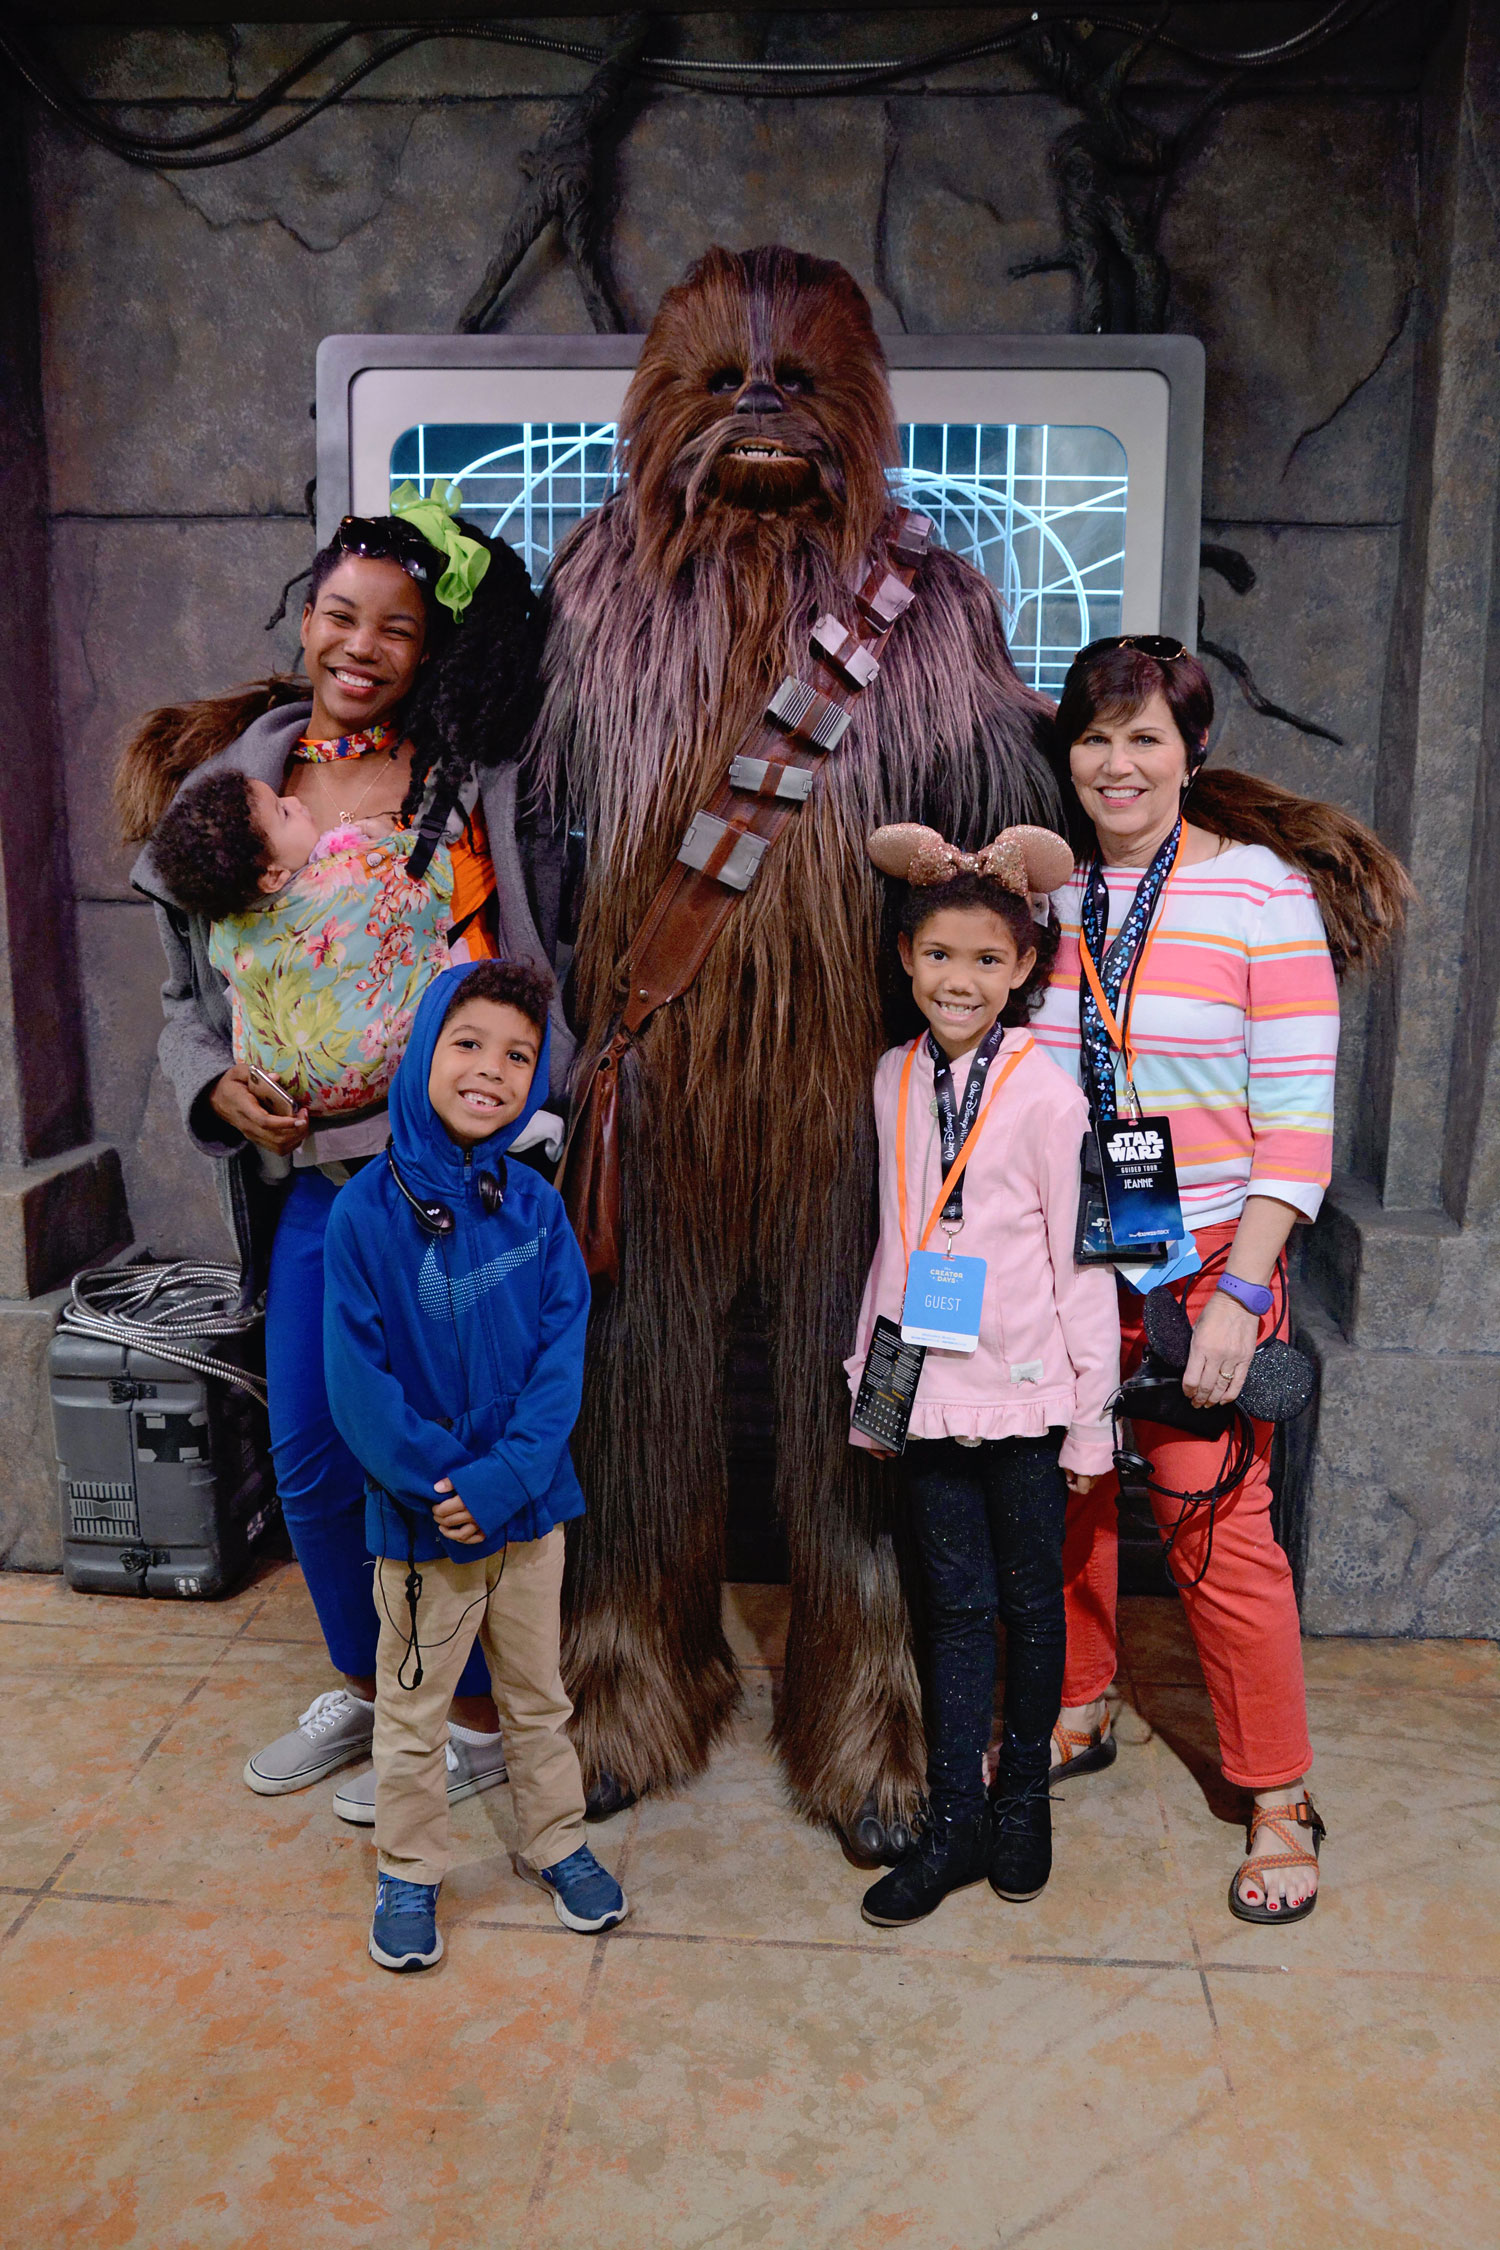 Family meeting Chewbacca on the Star Wars Guided Tour at Disney's Hollywood Studios